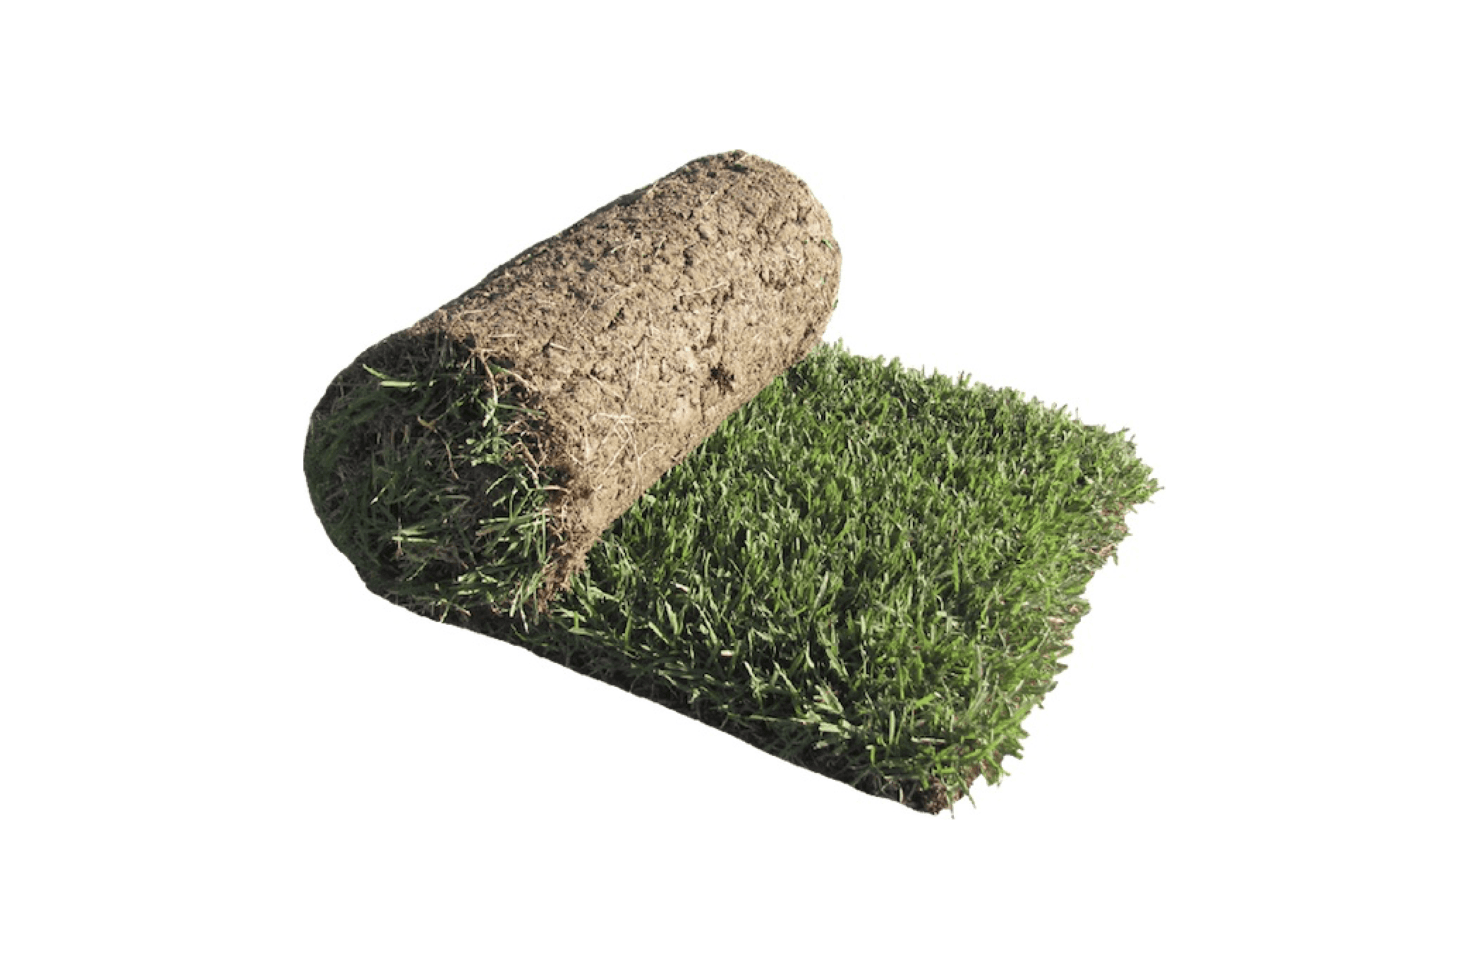 For use as lawn or turf grass, mow-ableZenith Zoysia Grass Sod are 85 cents per square foot from Central Sod Farms.